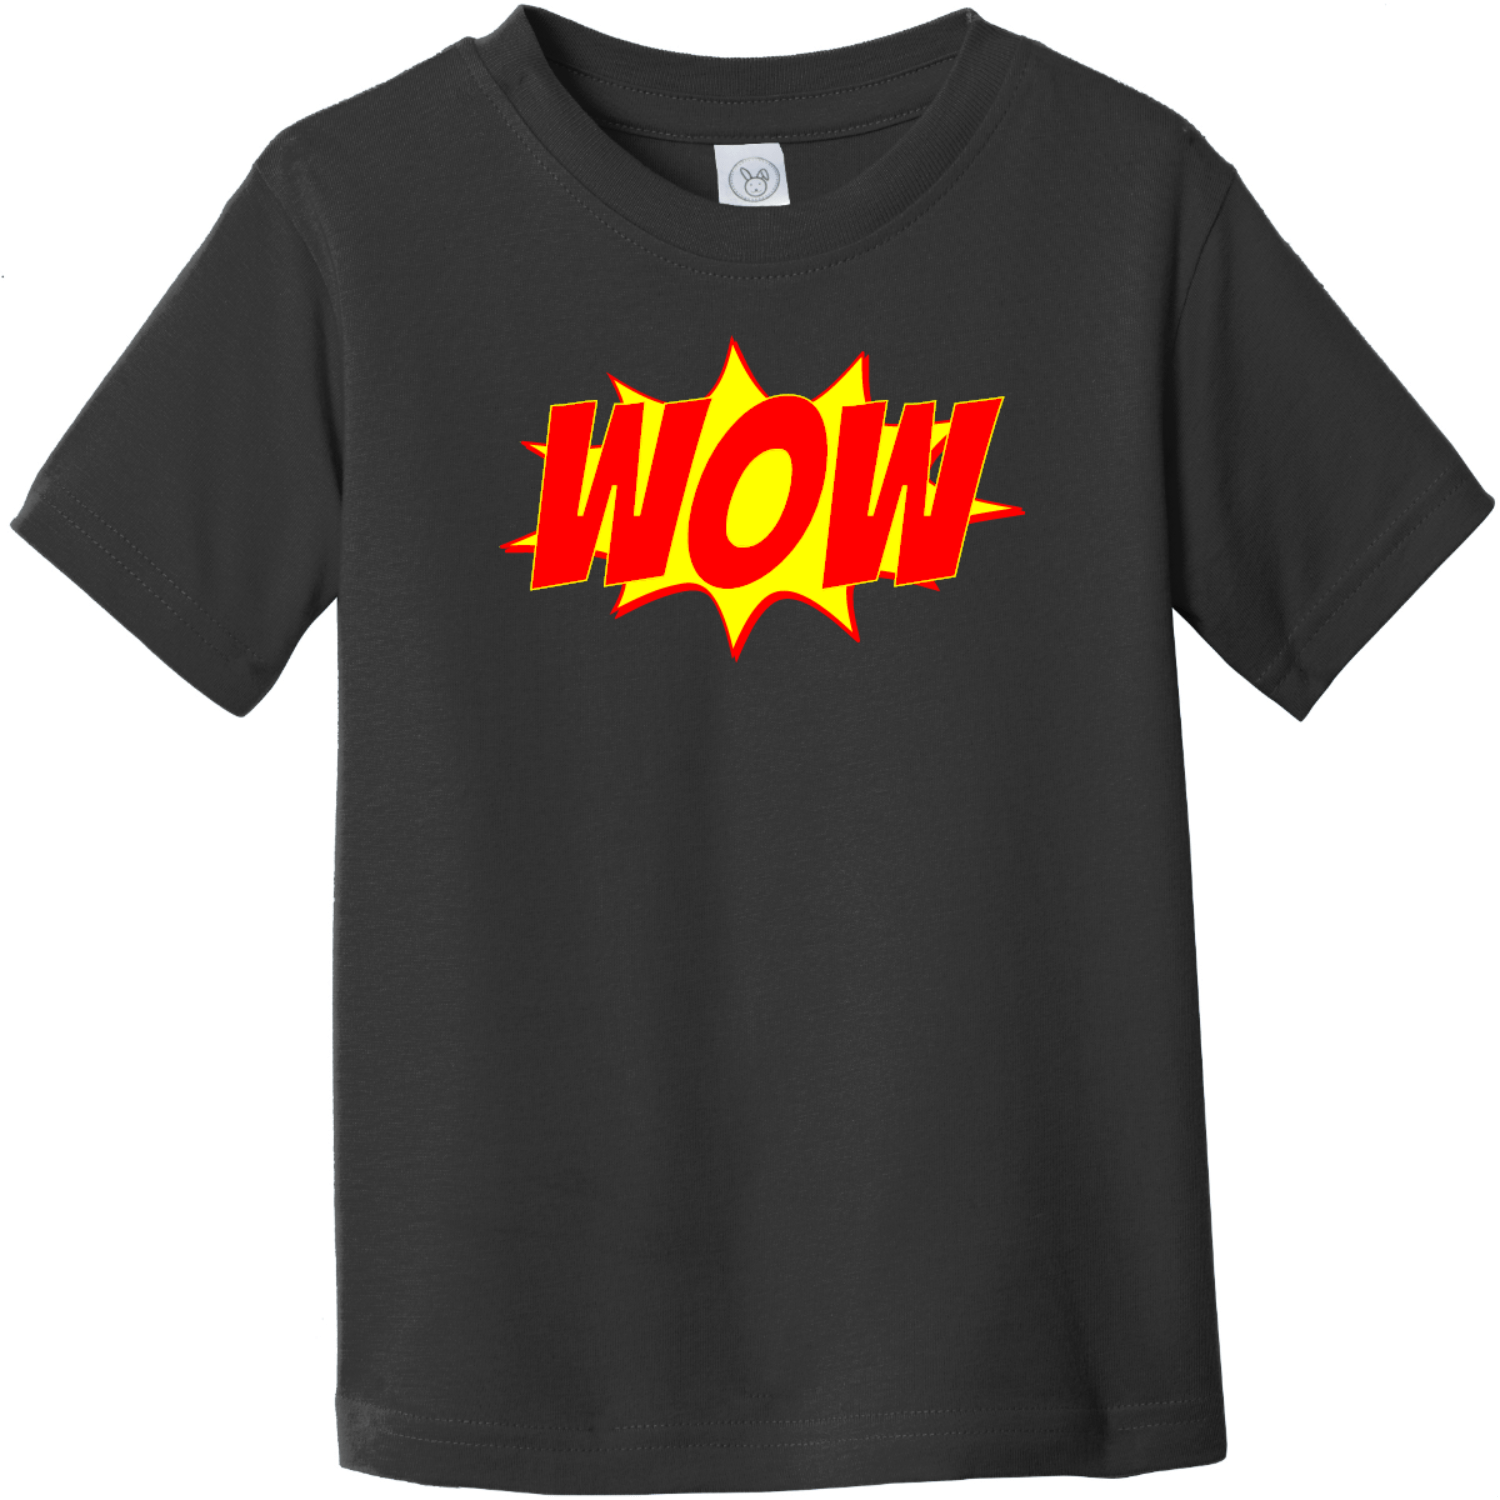 Wow Word Explosion Toddler T-Shirt Black Rabbit Skins Toddler Fine Jersey Tee RS3321